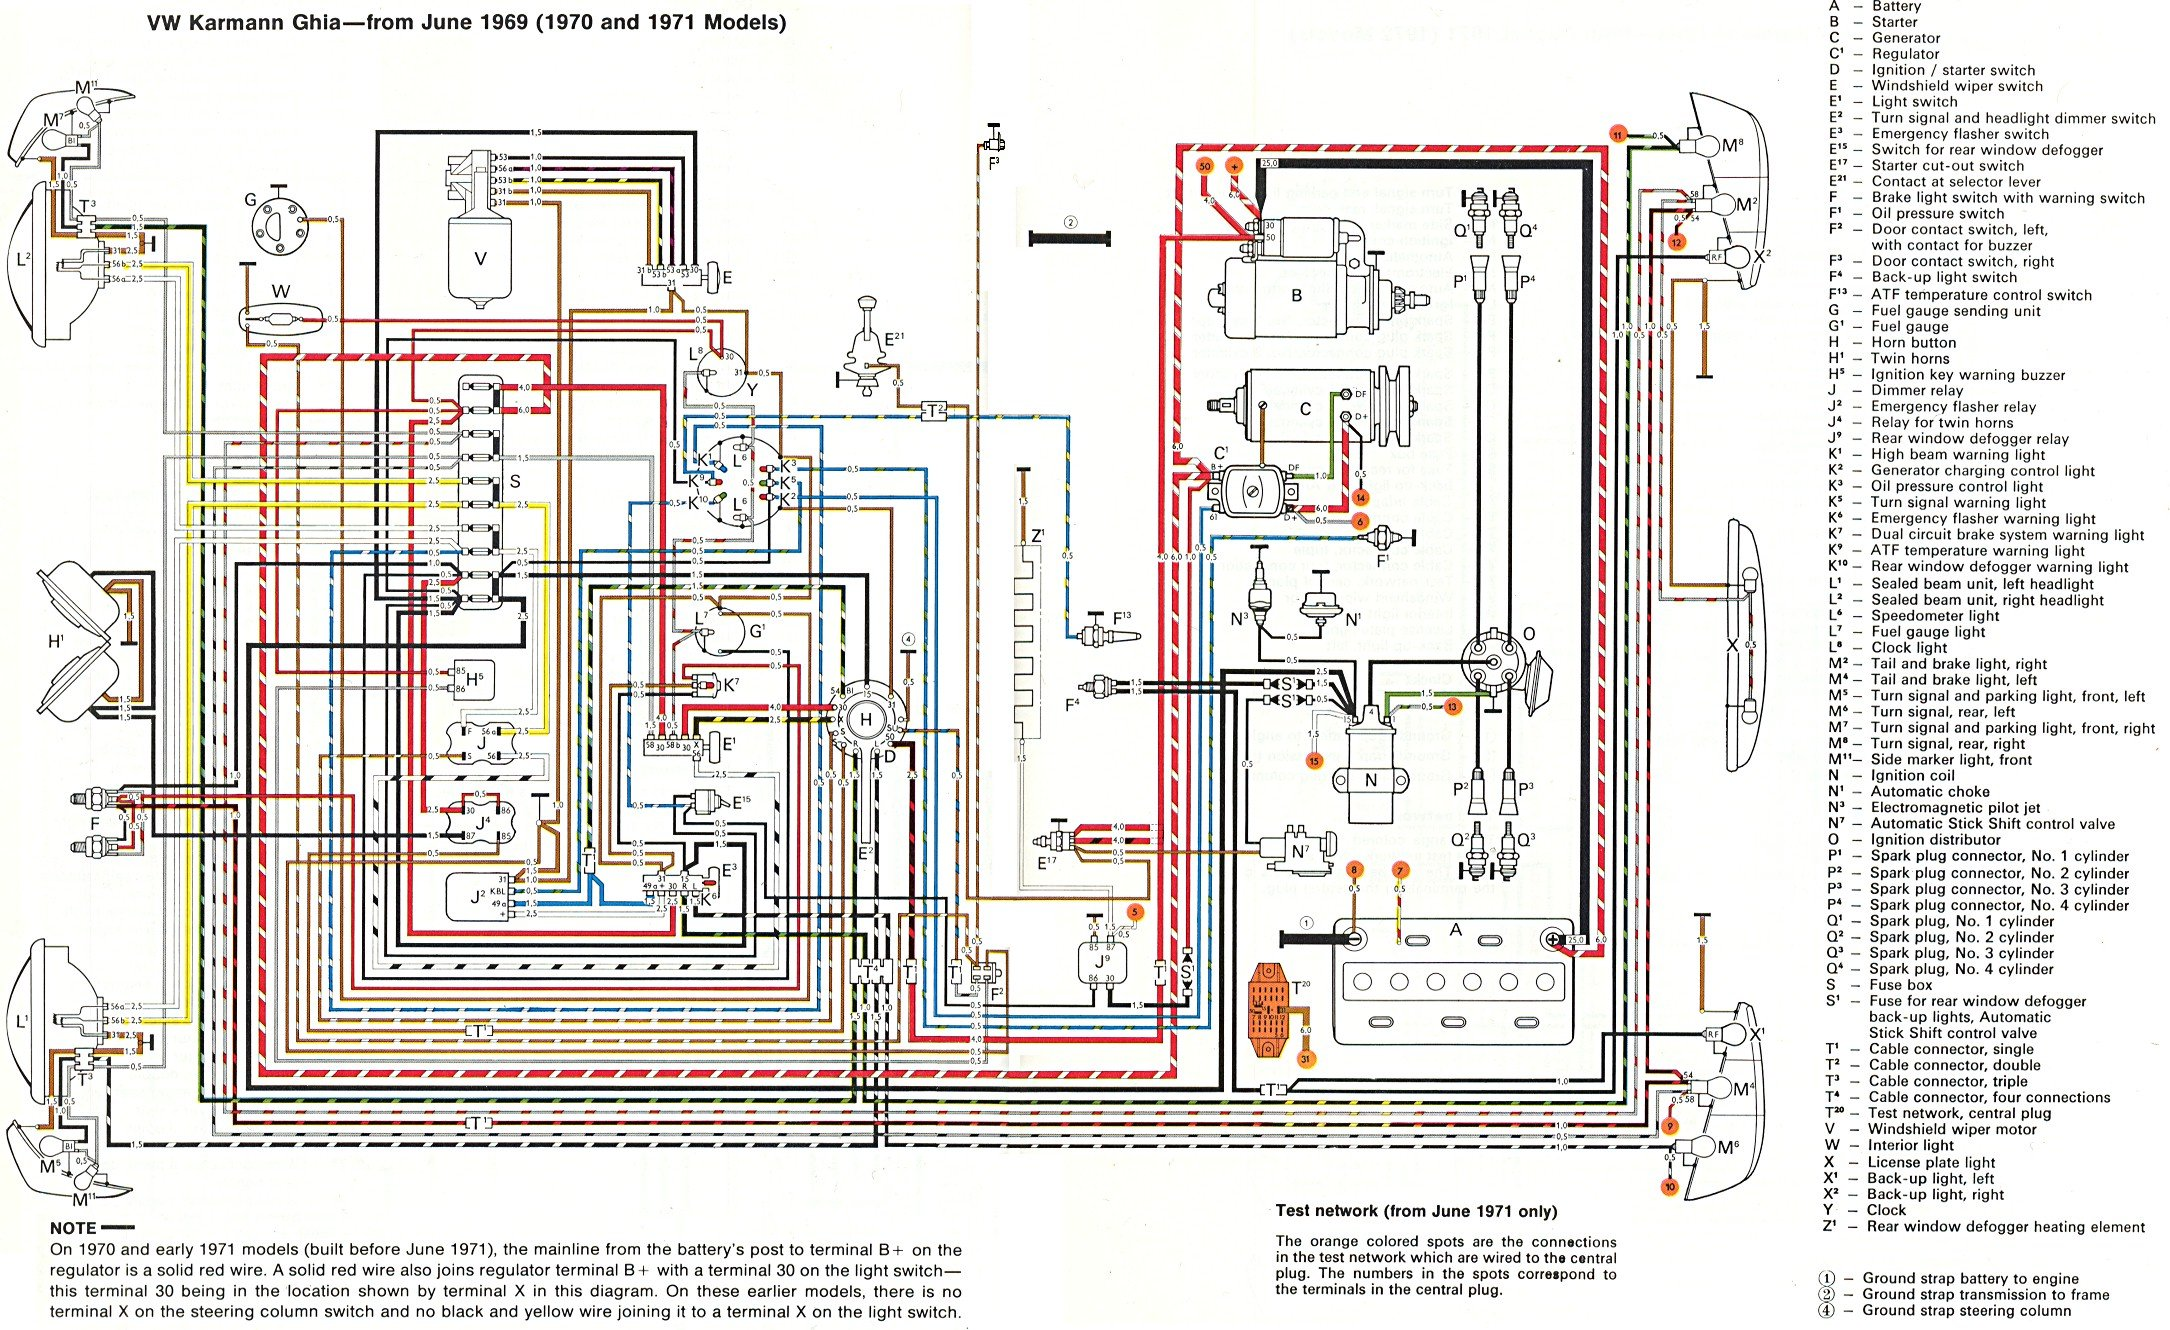 1970 karmann ghia wiring diagram